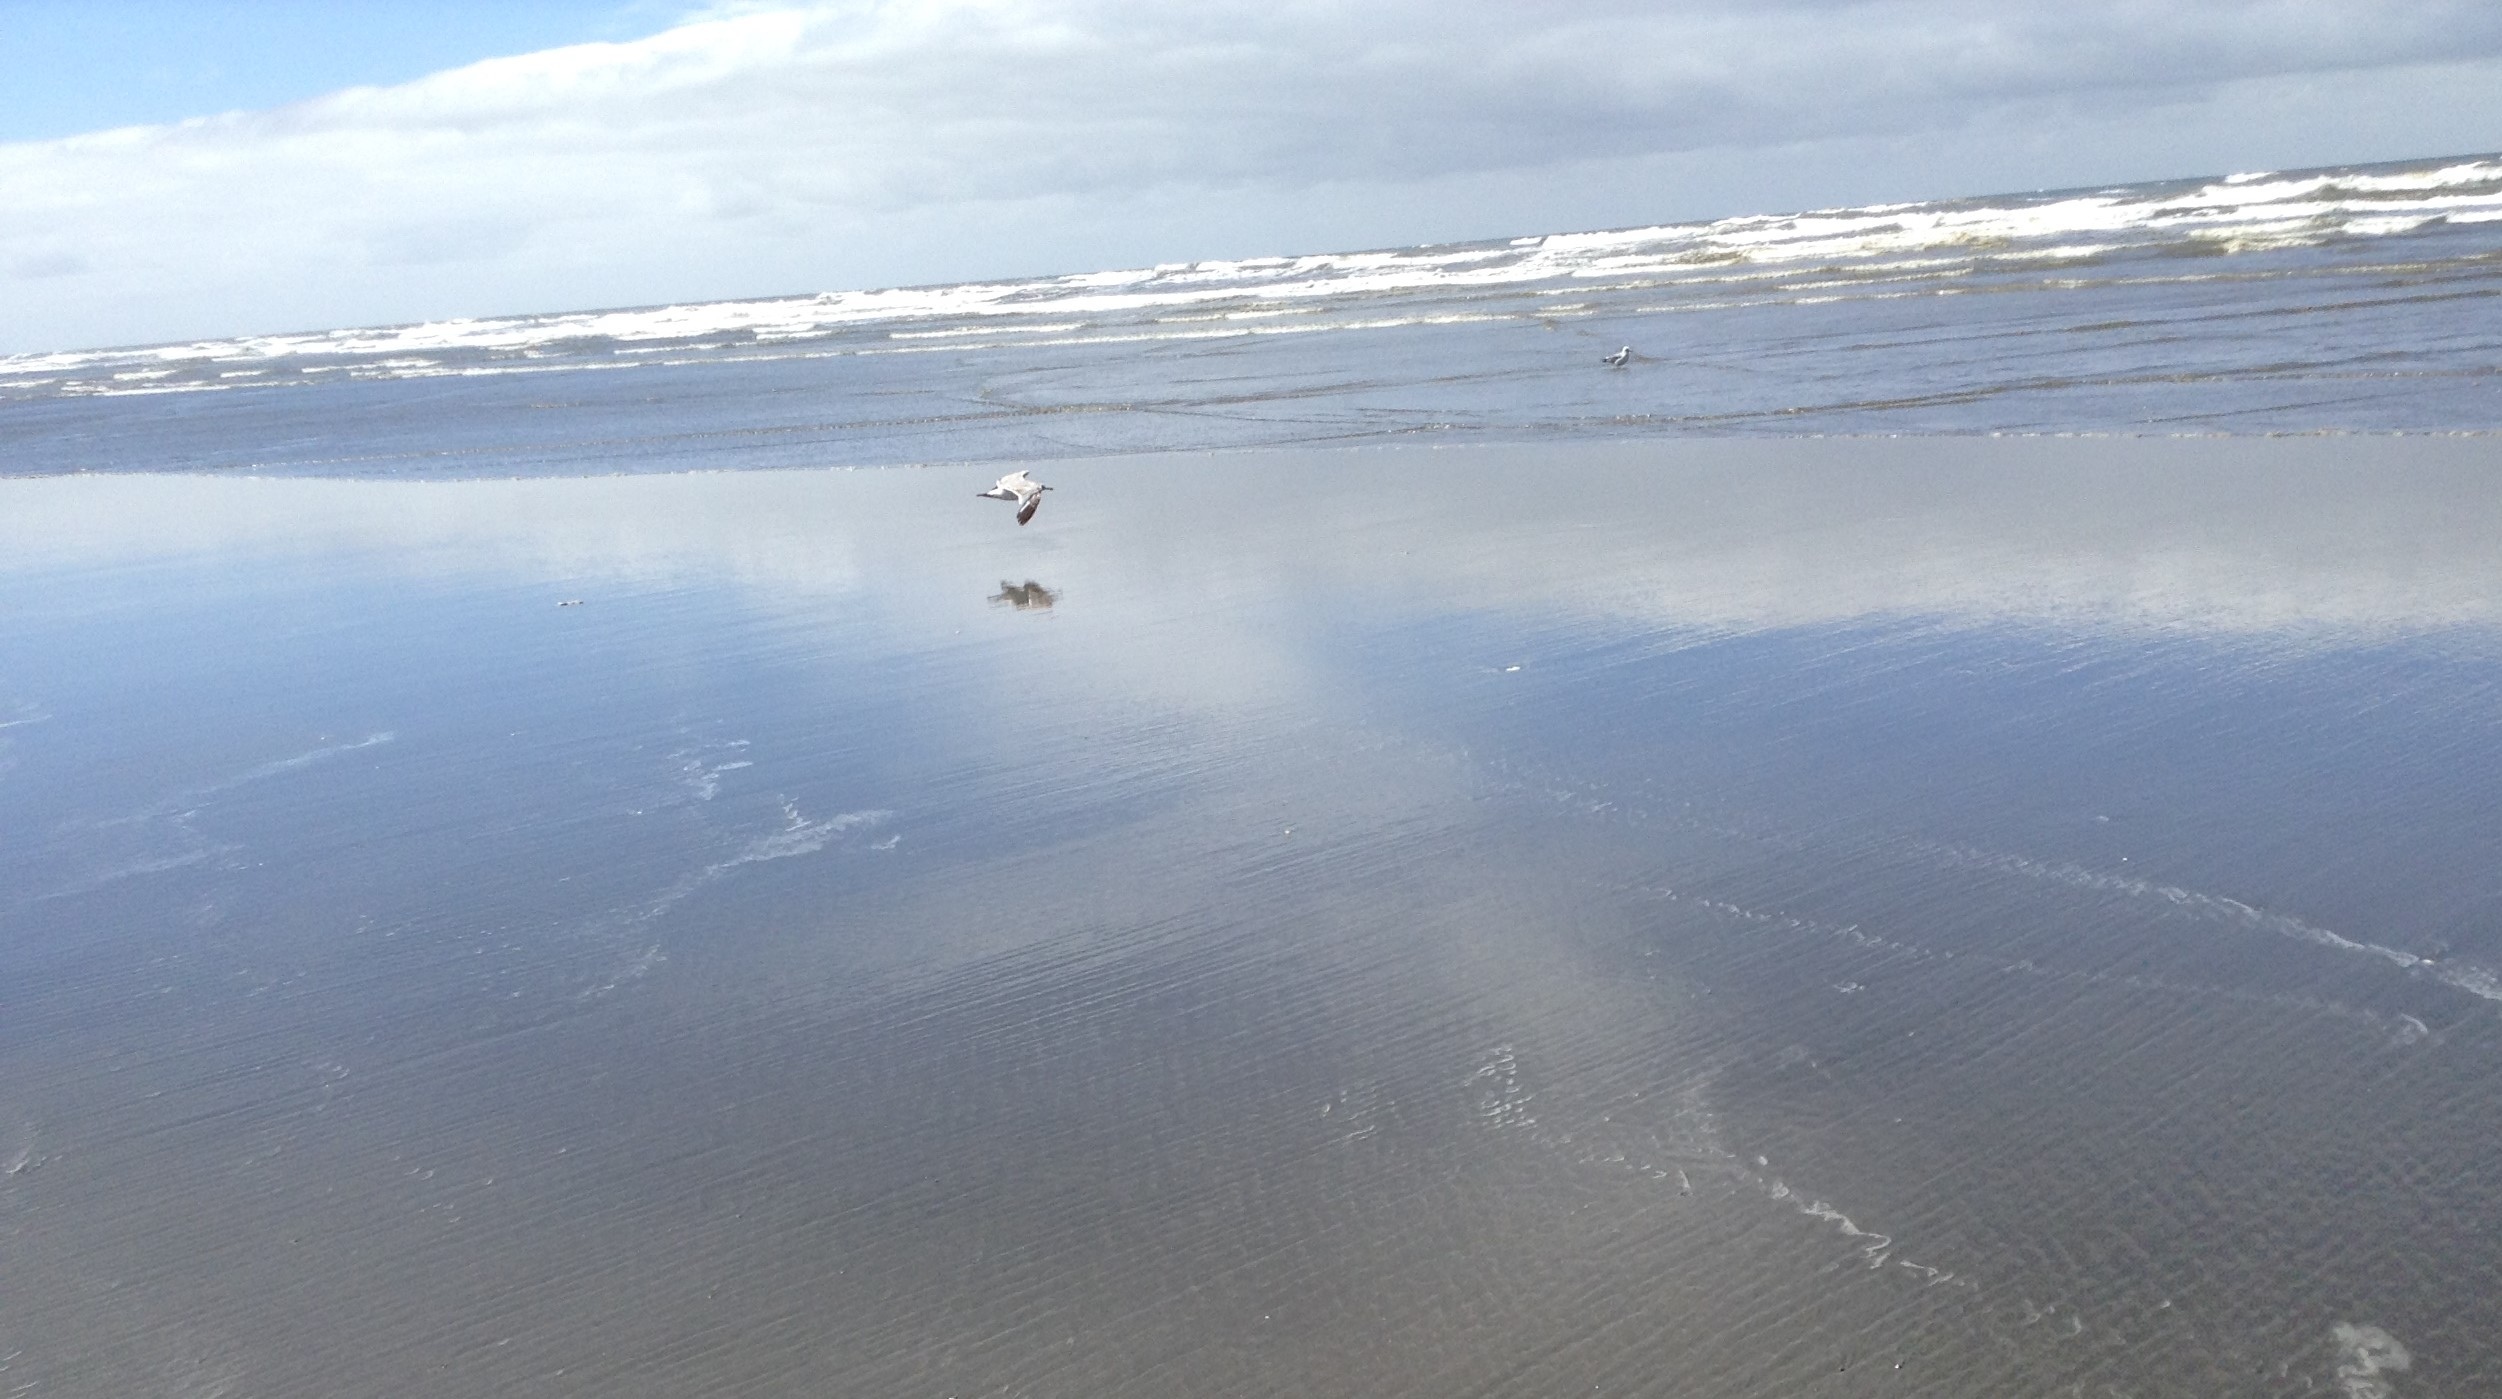 Reflection of seagull over the beach surf of the Pacific Ocean in Ocean Shores WA, USA.